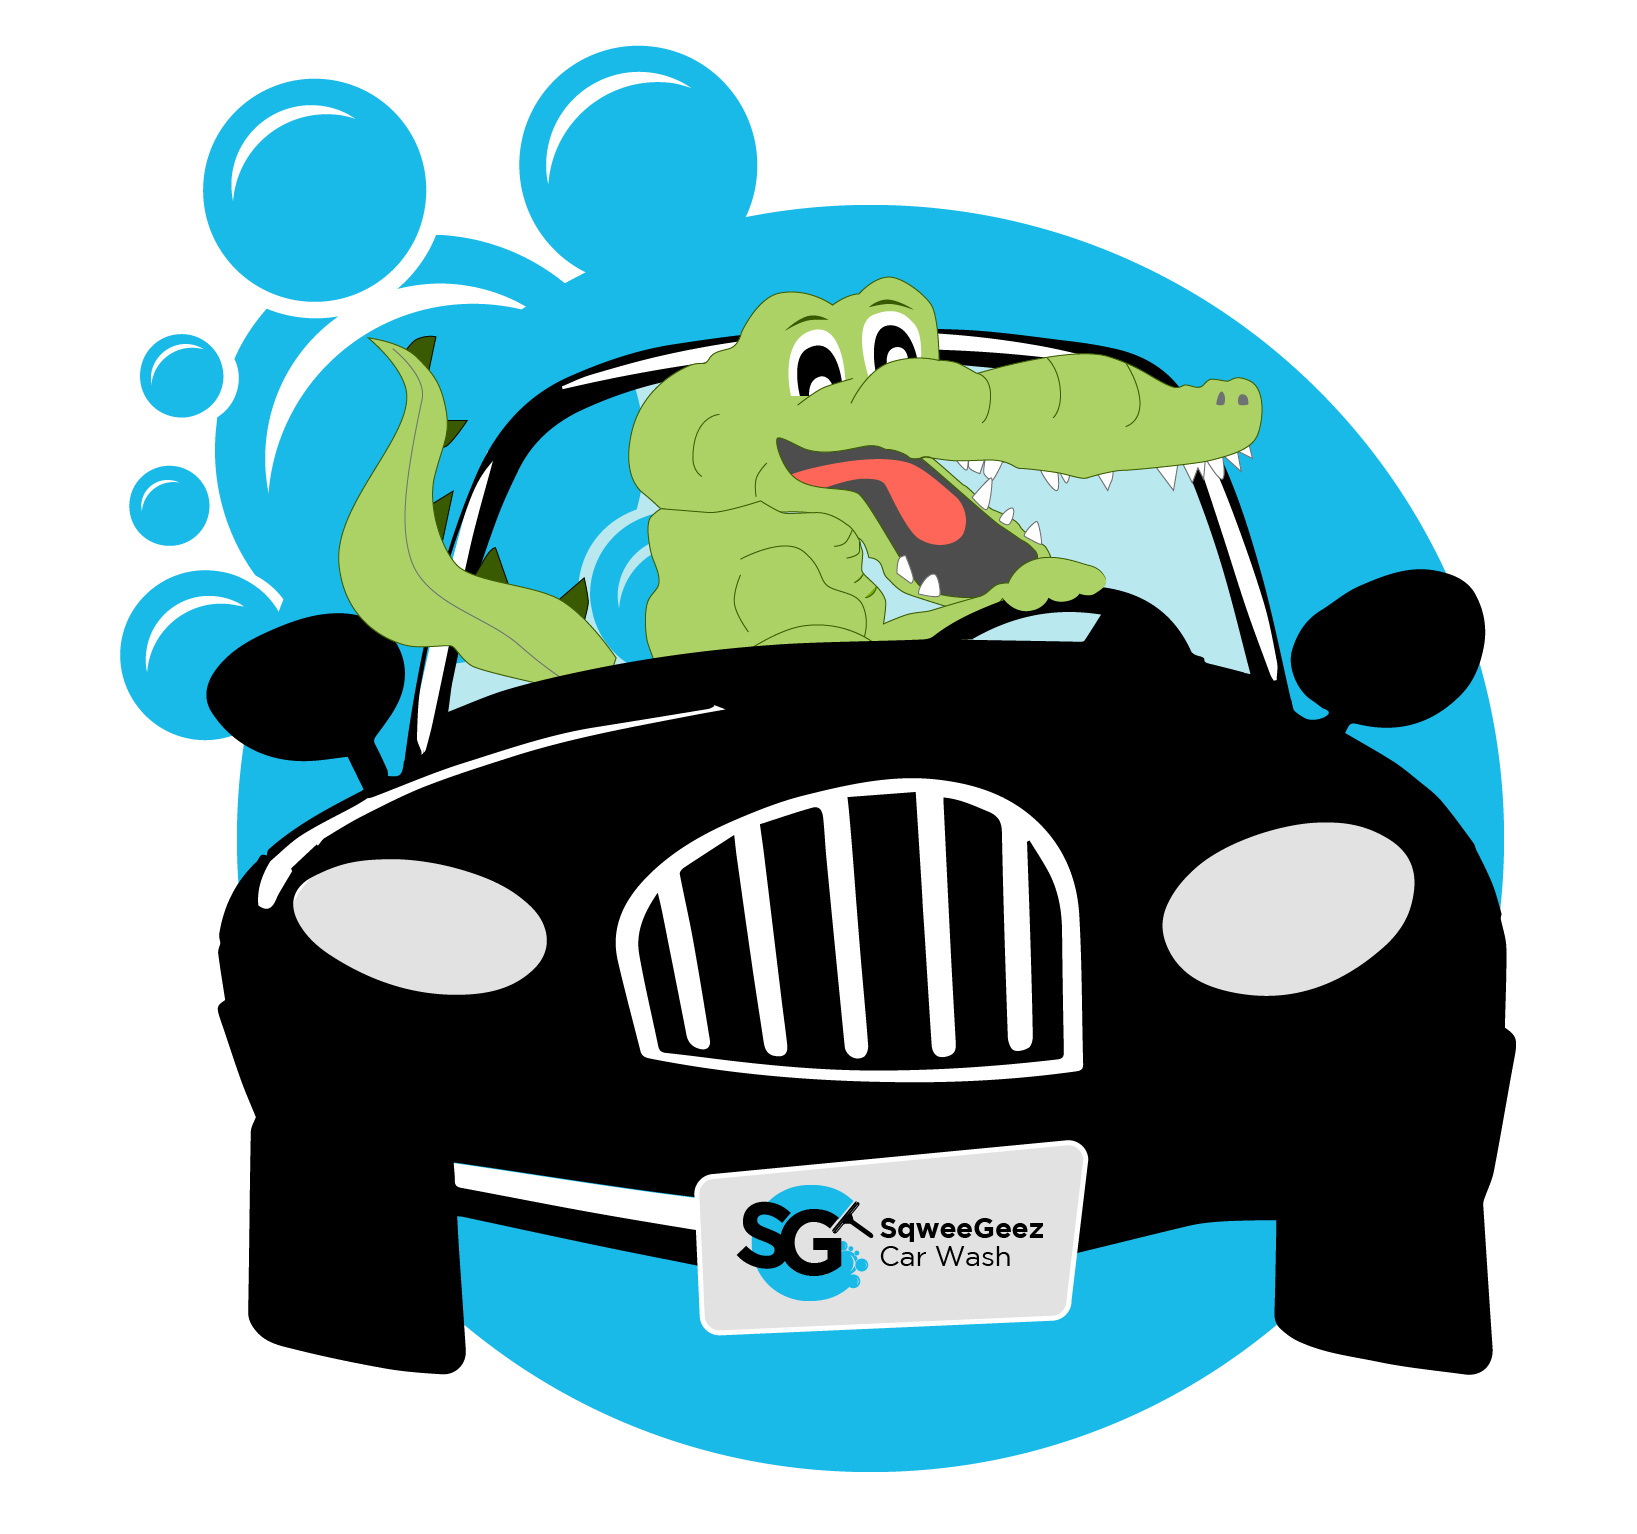 Fundraiser clipart car wash. About sqweegeez